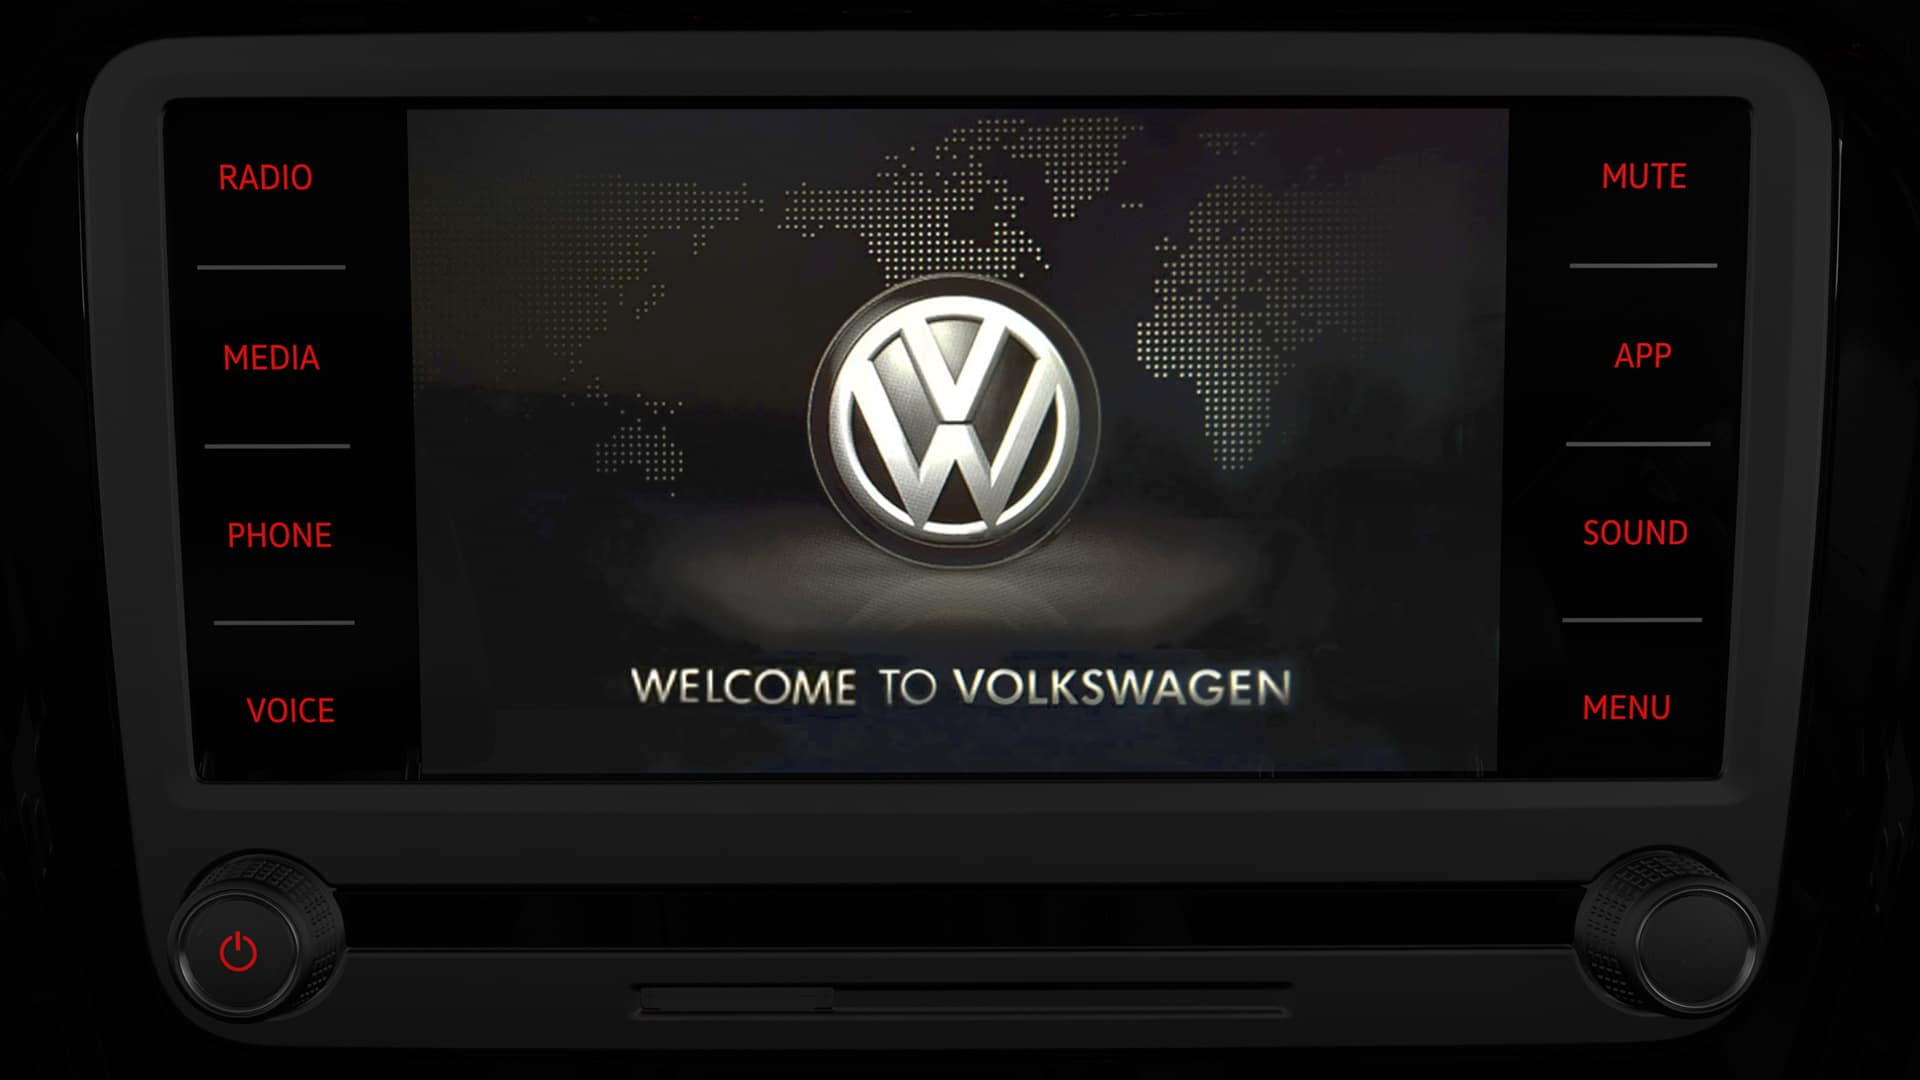 VW Welcome screen